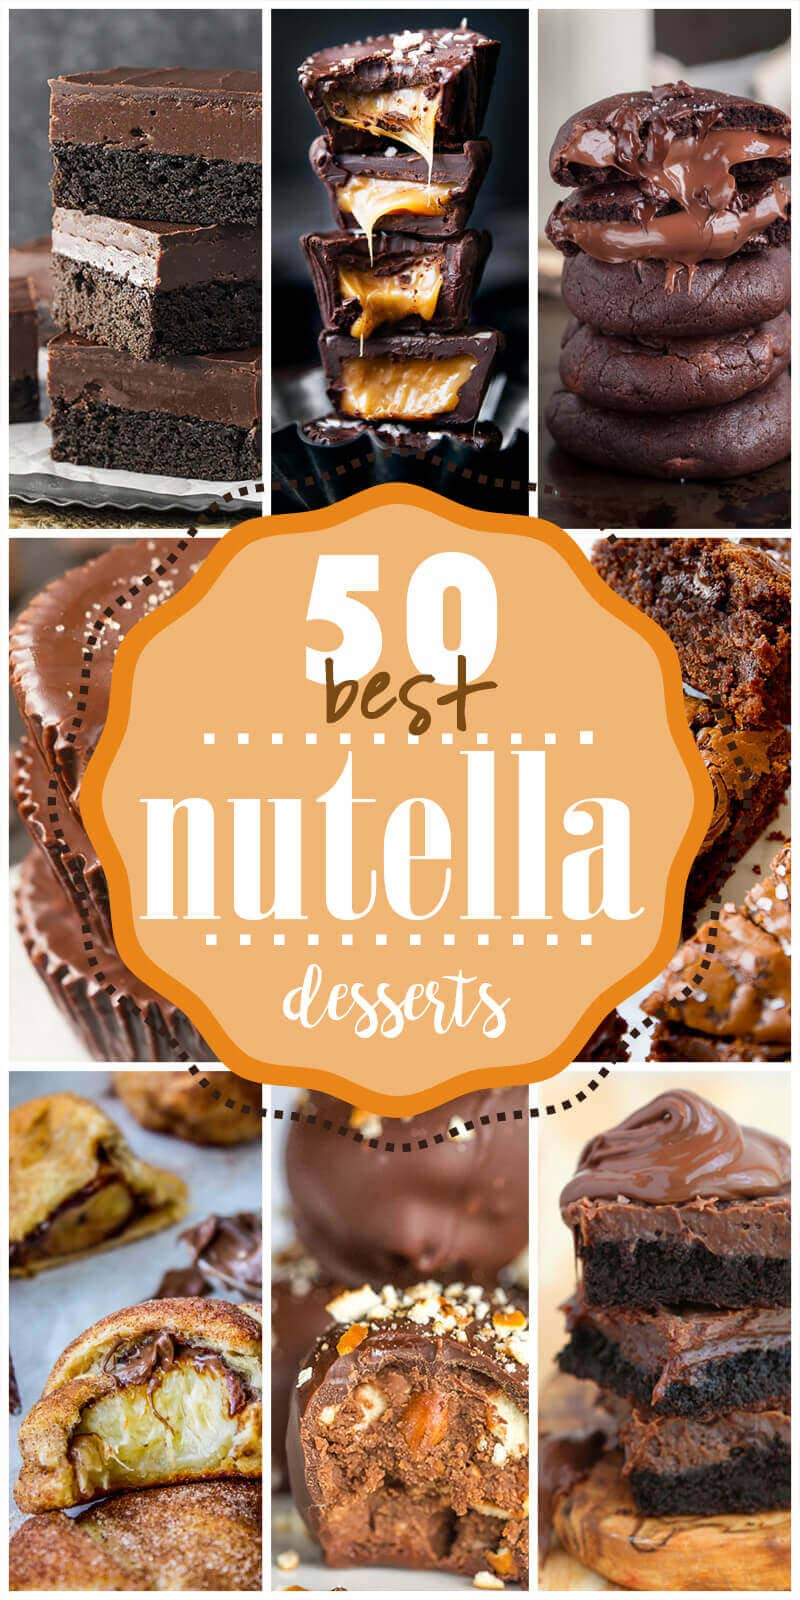 50 Best Nutella Dessert Recipes You Should Make In 2020